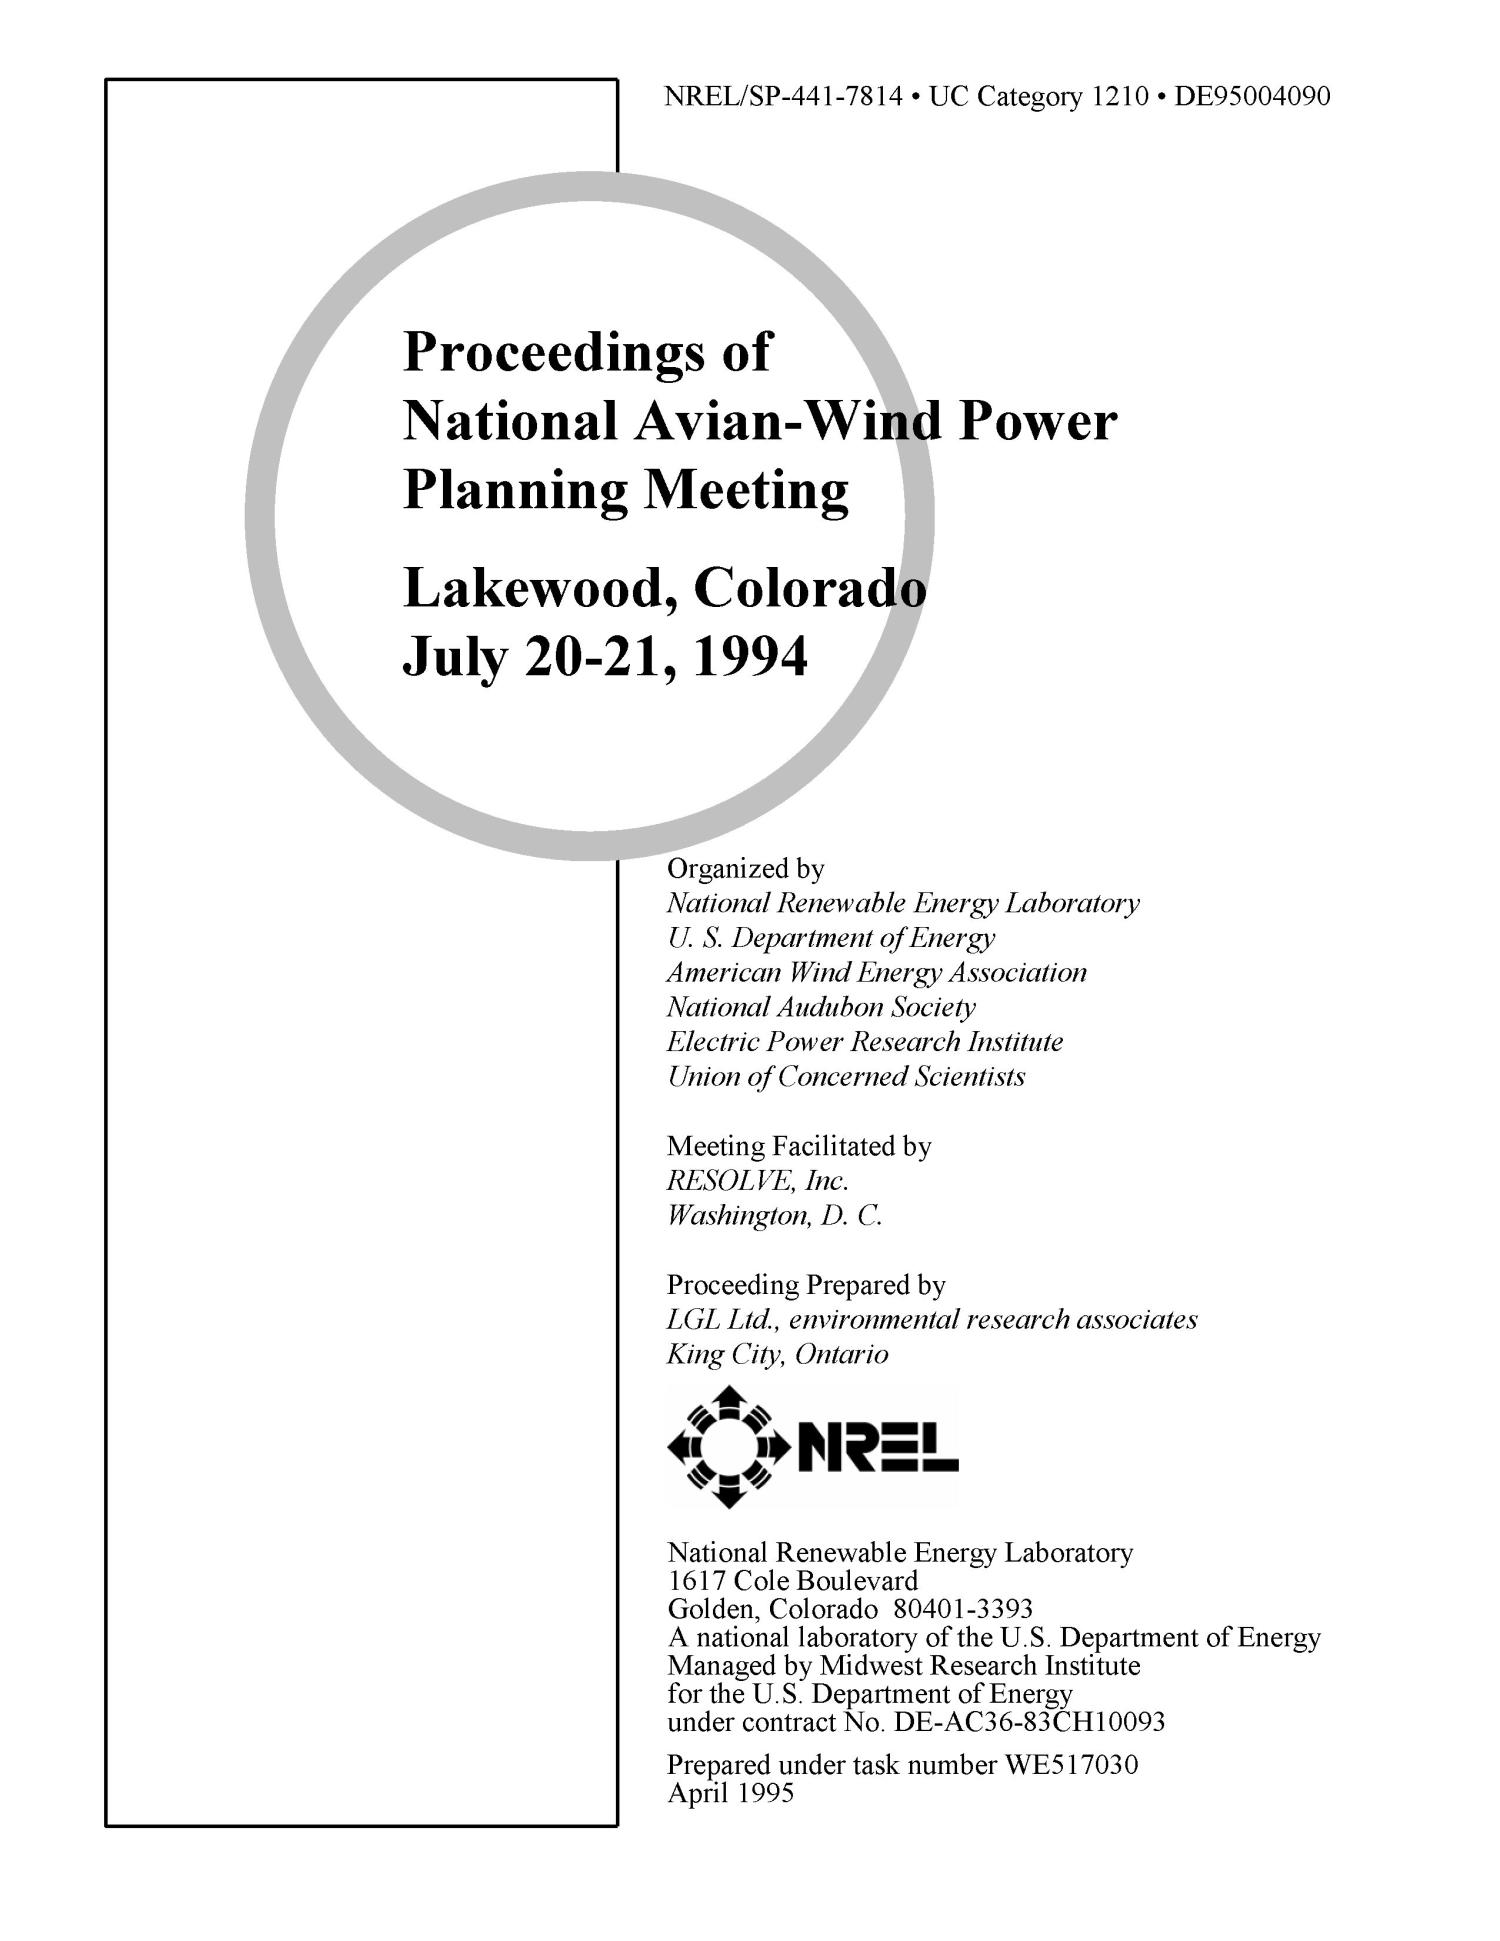 Proceedings of National Avian-Wind Power Planning Meeting, Lakewood, Colorado, July 20-21, 1994                                                                                                      [Sequence #]: 2 of 156